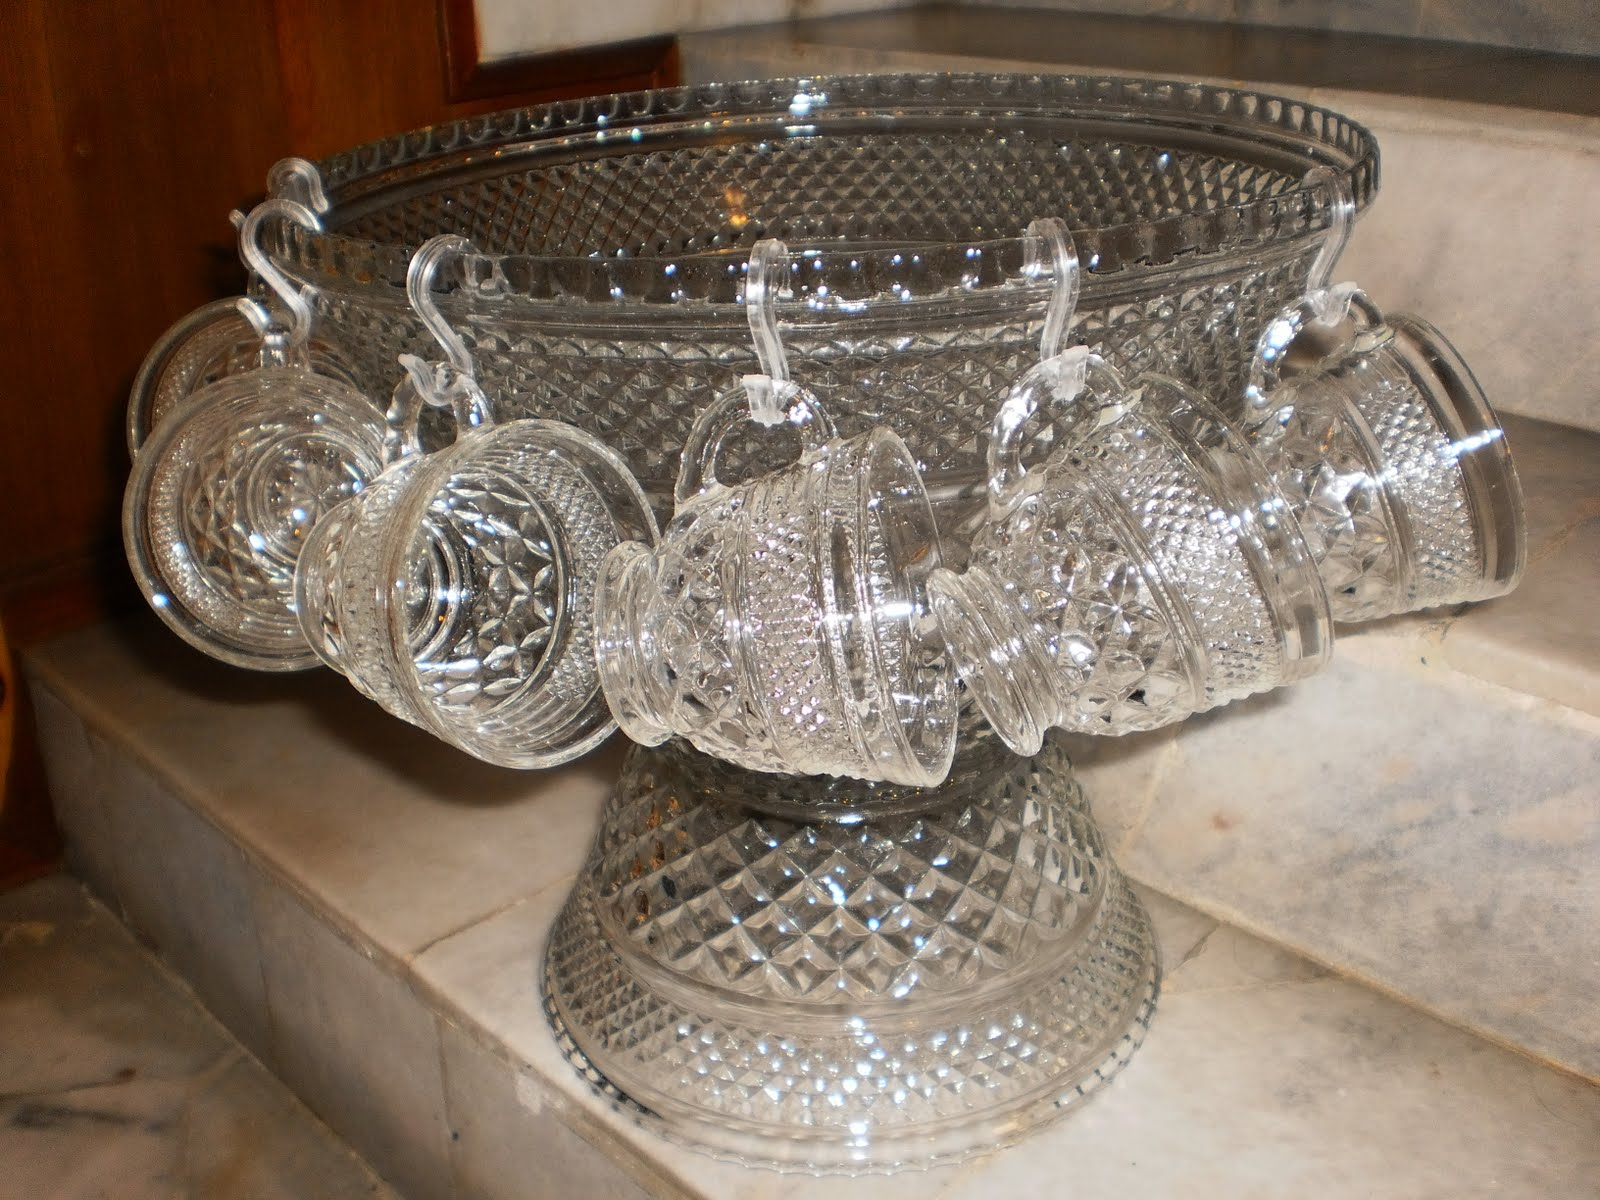 Bonnie S Collection Wexford Punch Bowl Set